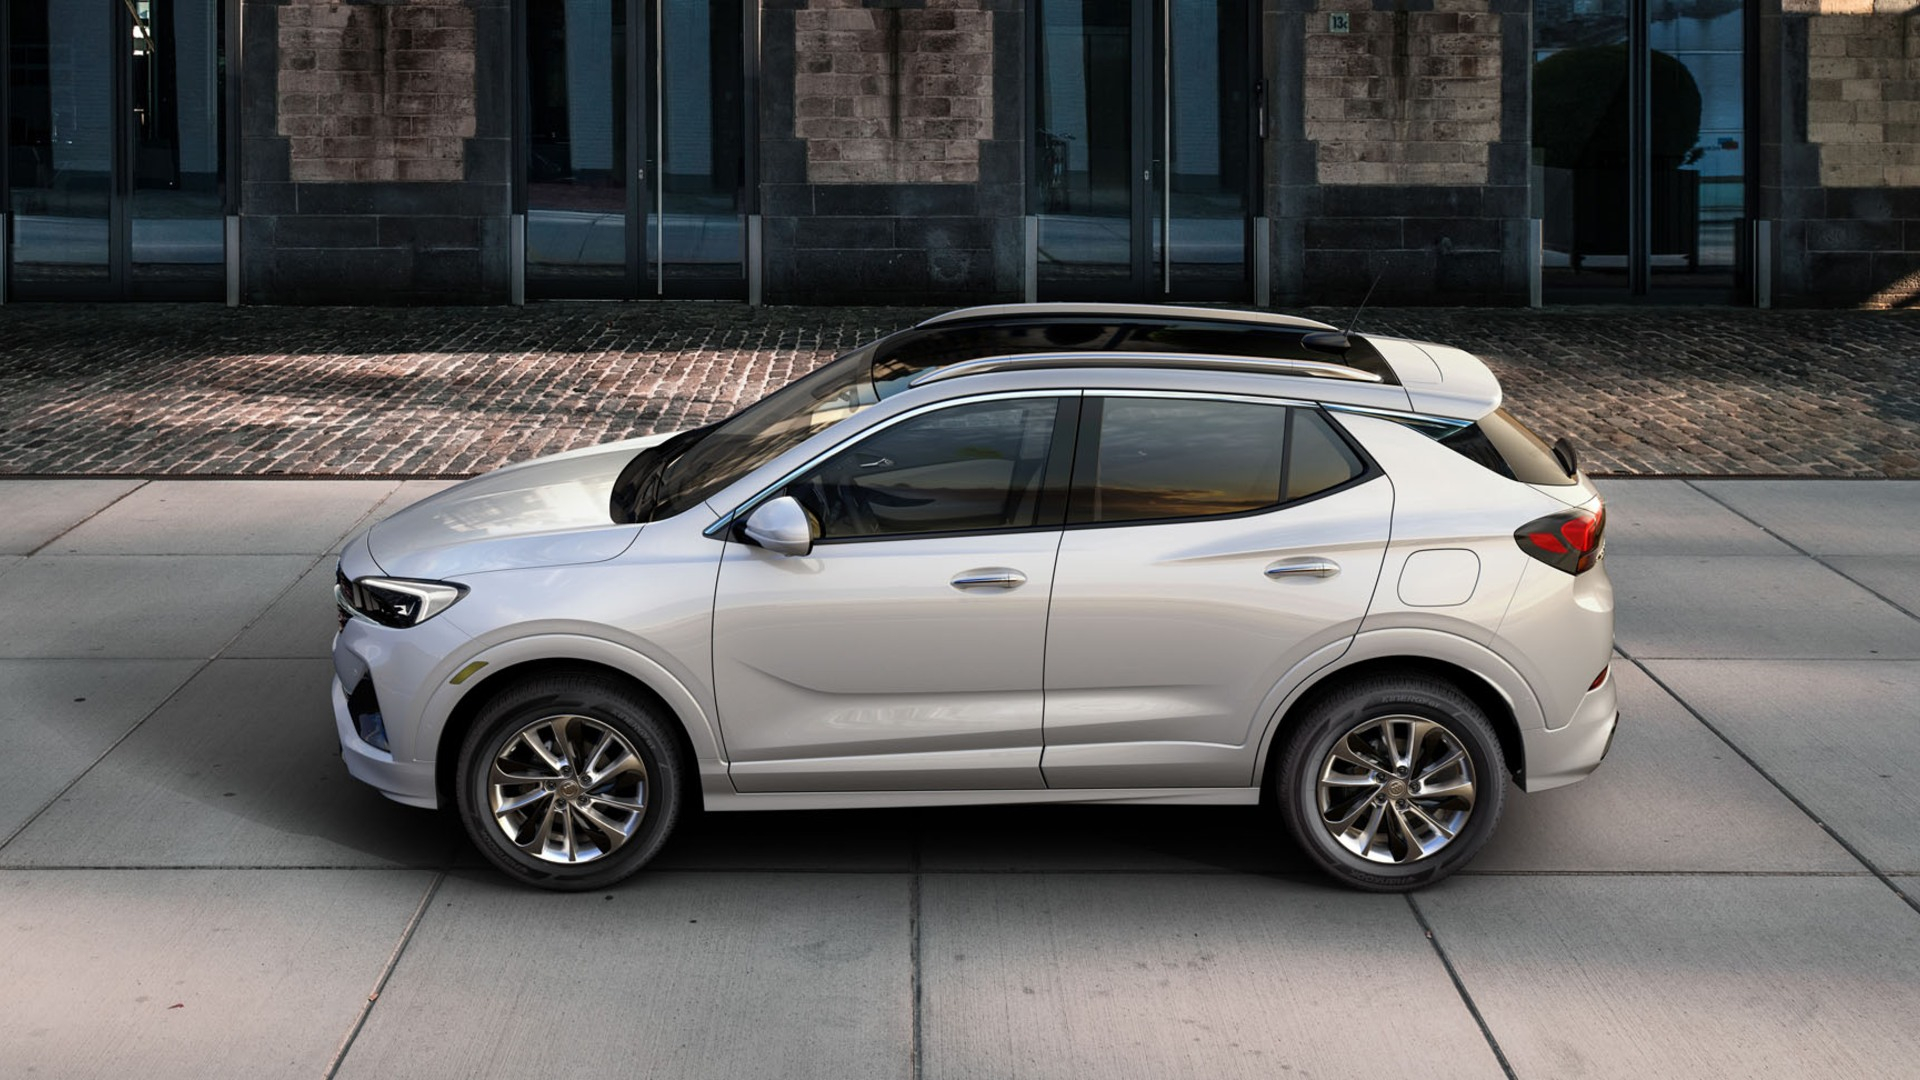 Buick Reveals U.s. Specs For The 2020 Encore Gx New 2022 Buick Encore Gx Used, Weight, 0-60